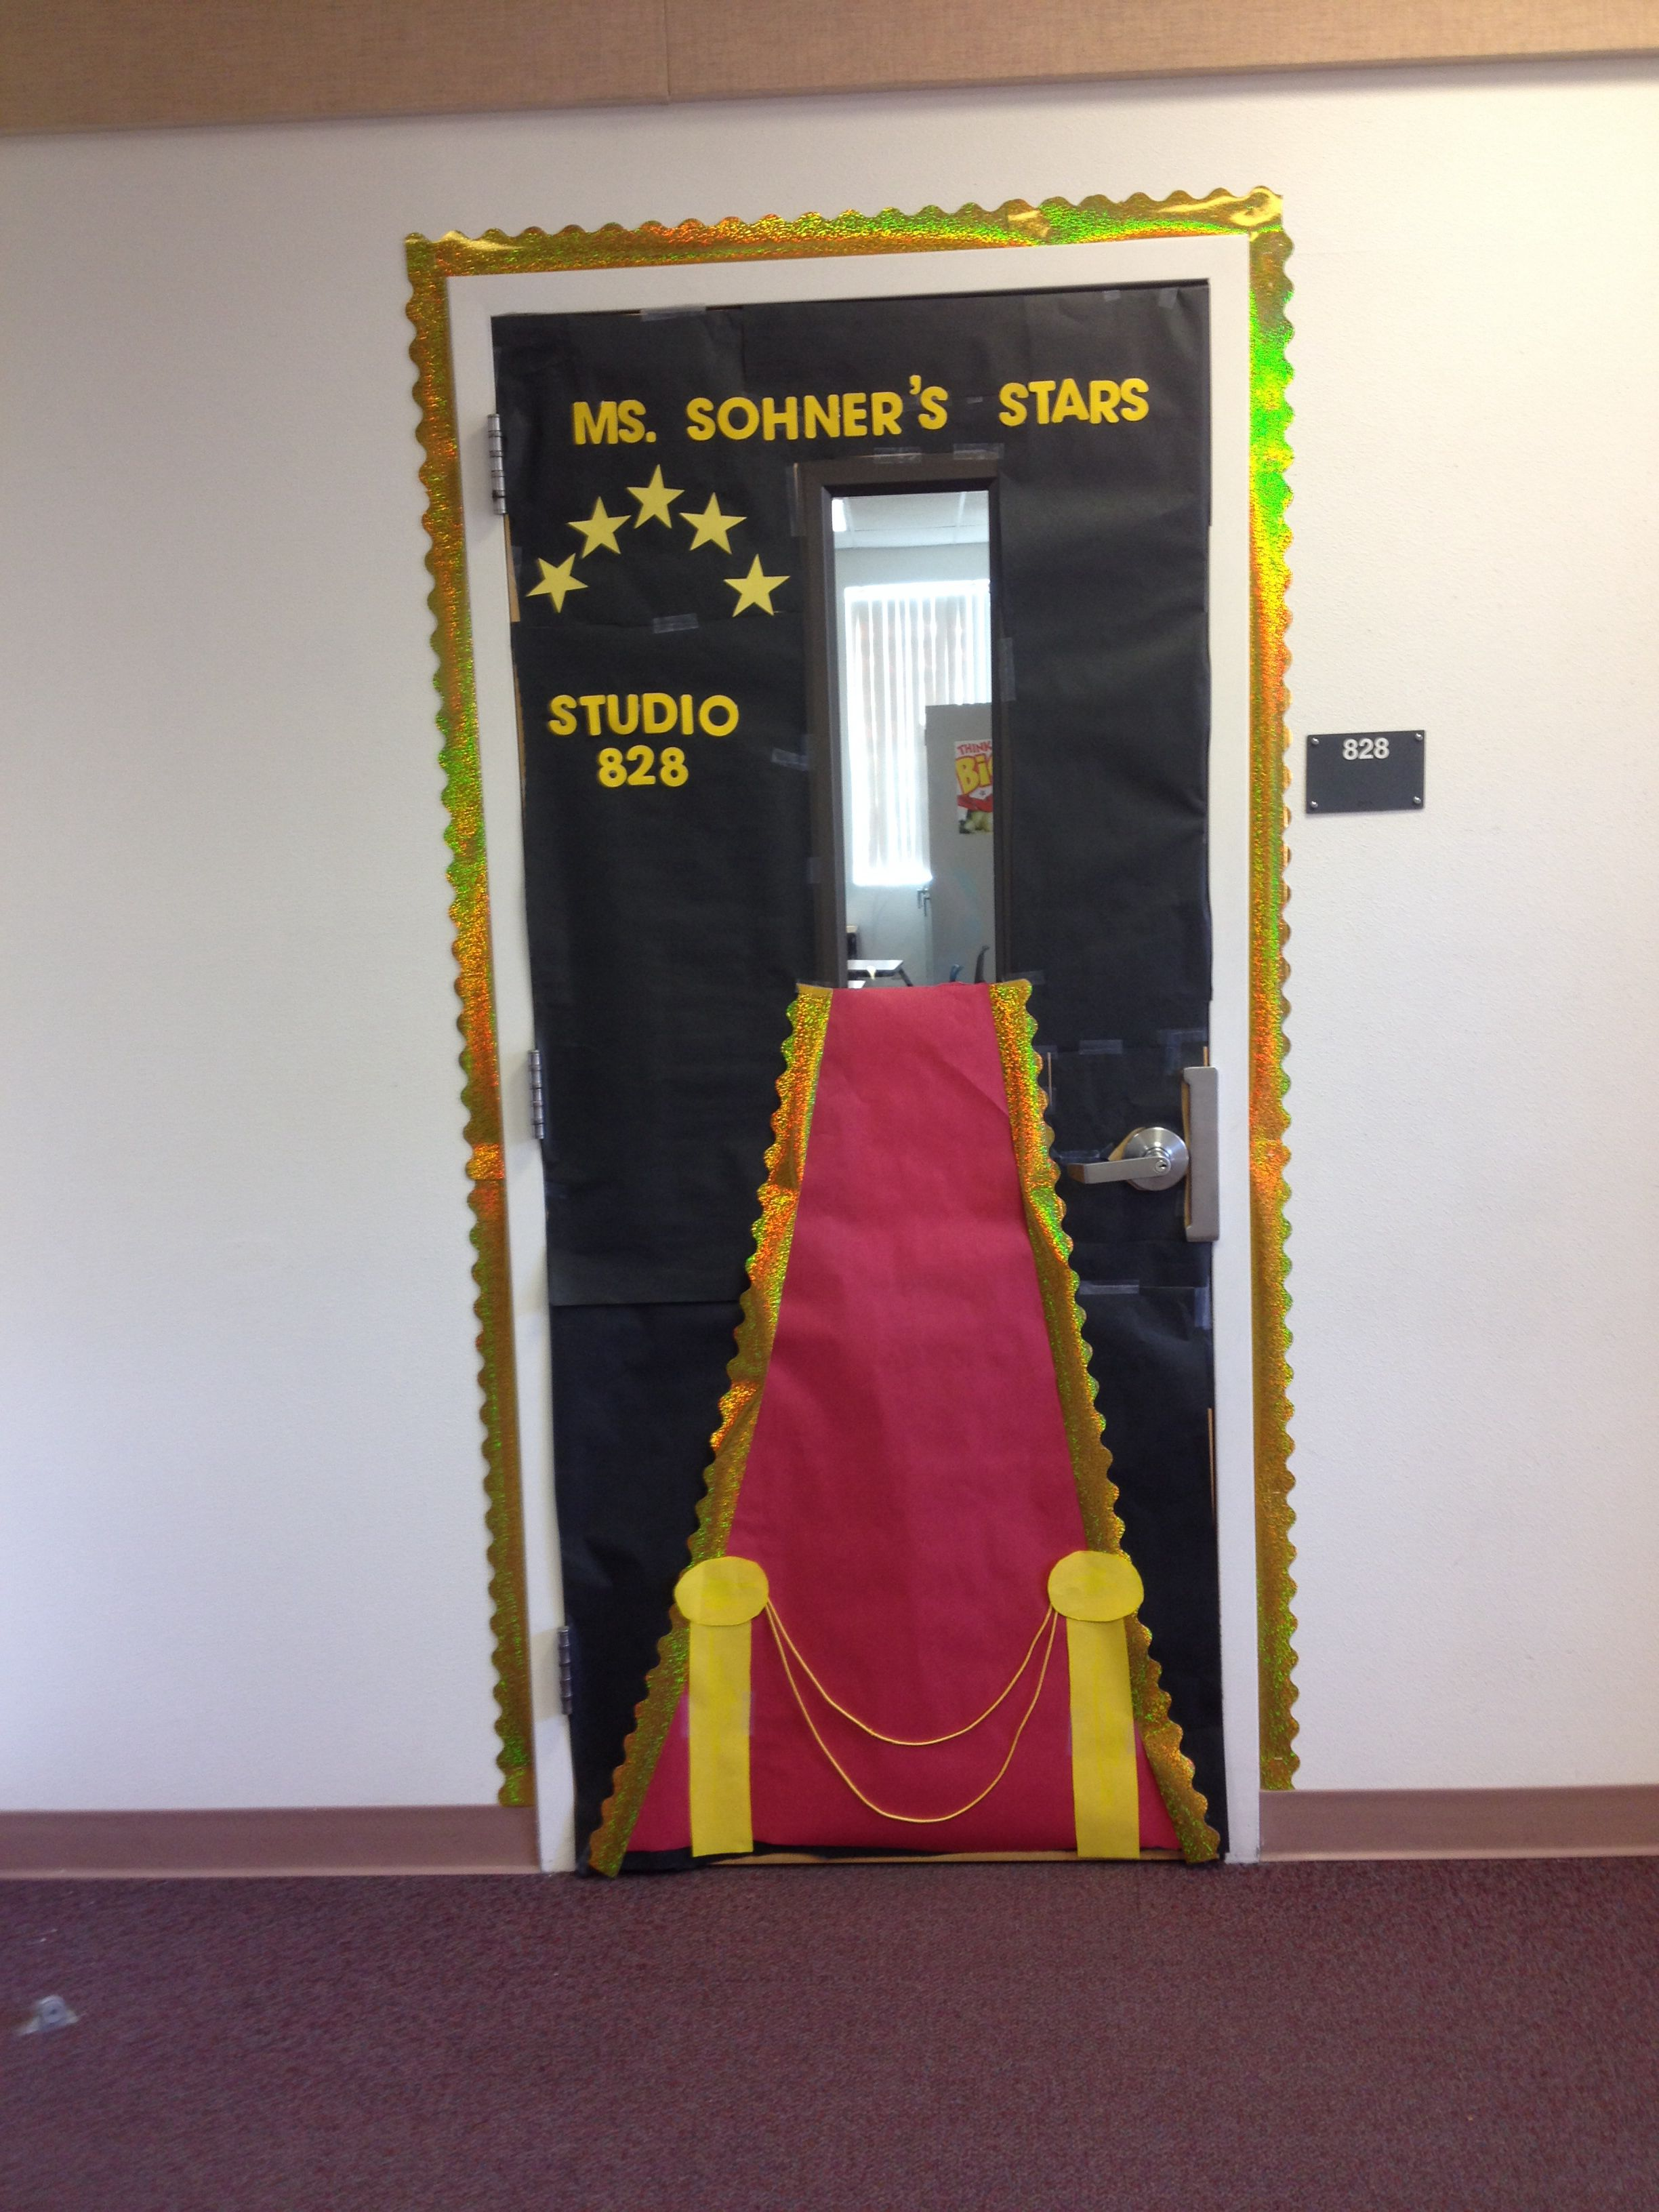 Pin By Bobbos Attia On Year 2 Classroom Ideas Hollywood Theme Classroom Hollywood Theme Classroom Door Star Themed Classroom